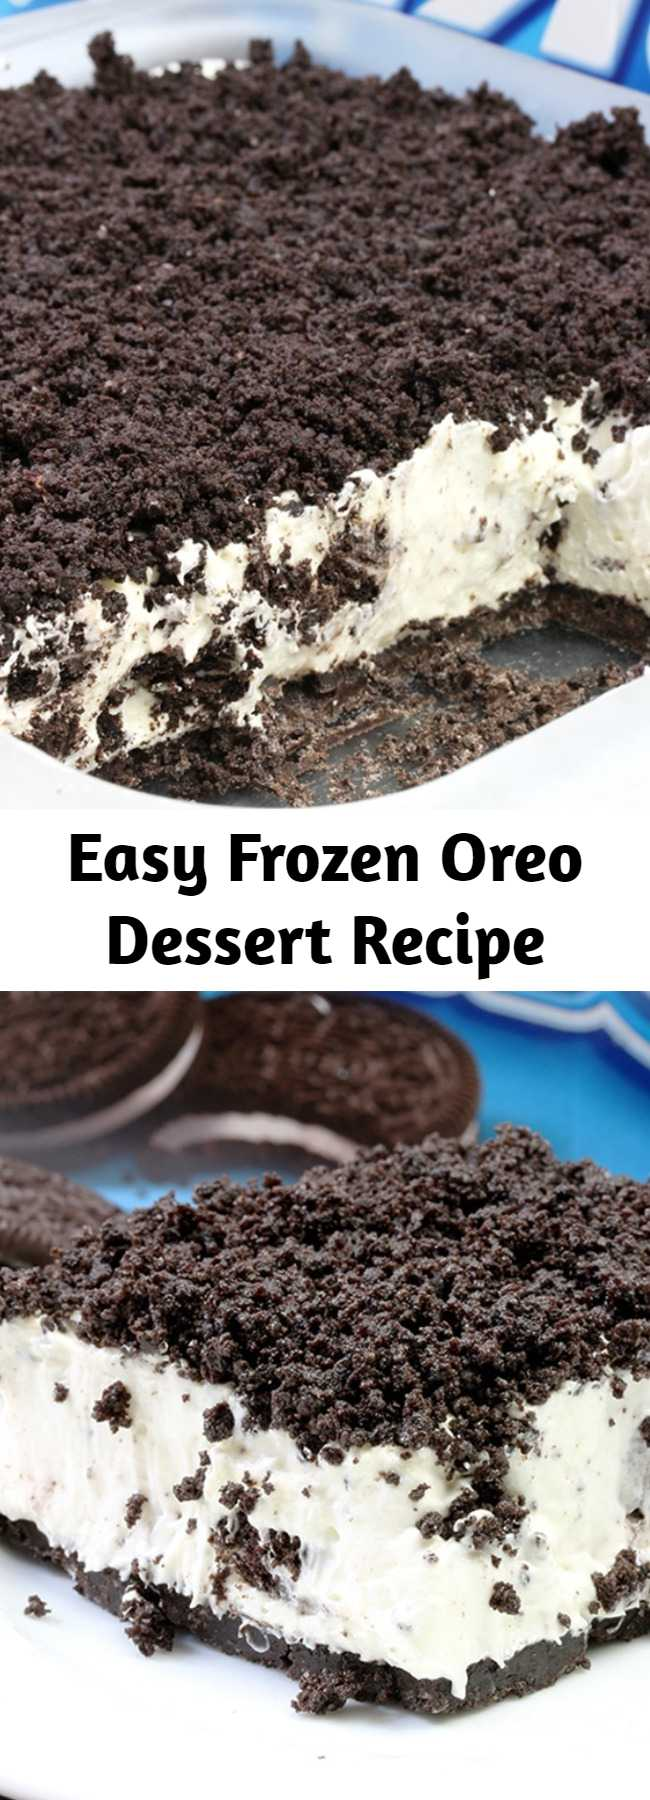 Easy Frozen Oreo Dessert Recipe - This Easy Frozen Oreo Dessert is light, frozen summer dessert… so easy to prepare – just perfect for Oreo cookie fans. One of my favorite frozen desserts. The first layer is made of Oreo cookies and butter, than comes frozen layer of cream cheese, sugar, heavy cream, condensed milk, vanilla and crushed Oreo cookies with Oreo crumbs on the top. Yummy!!!